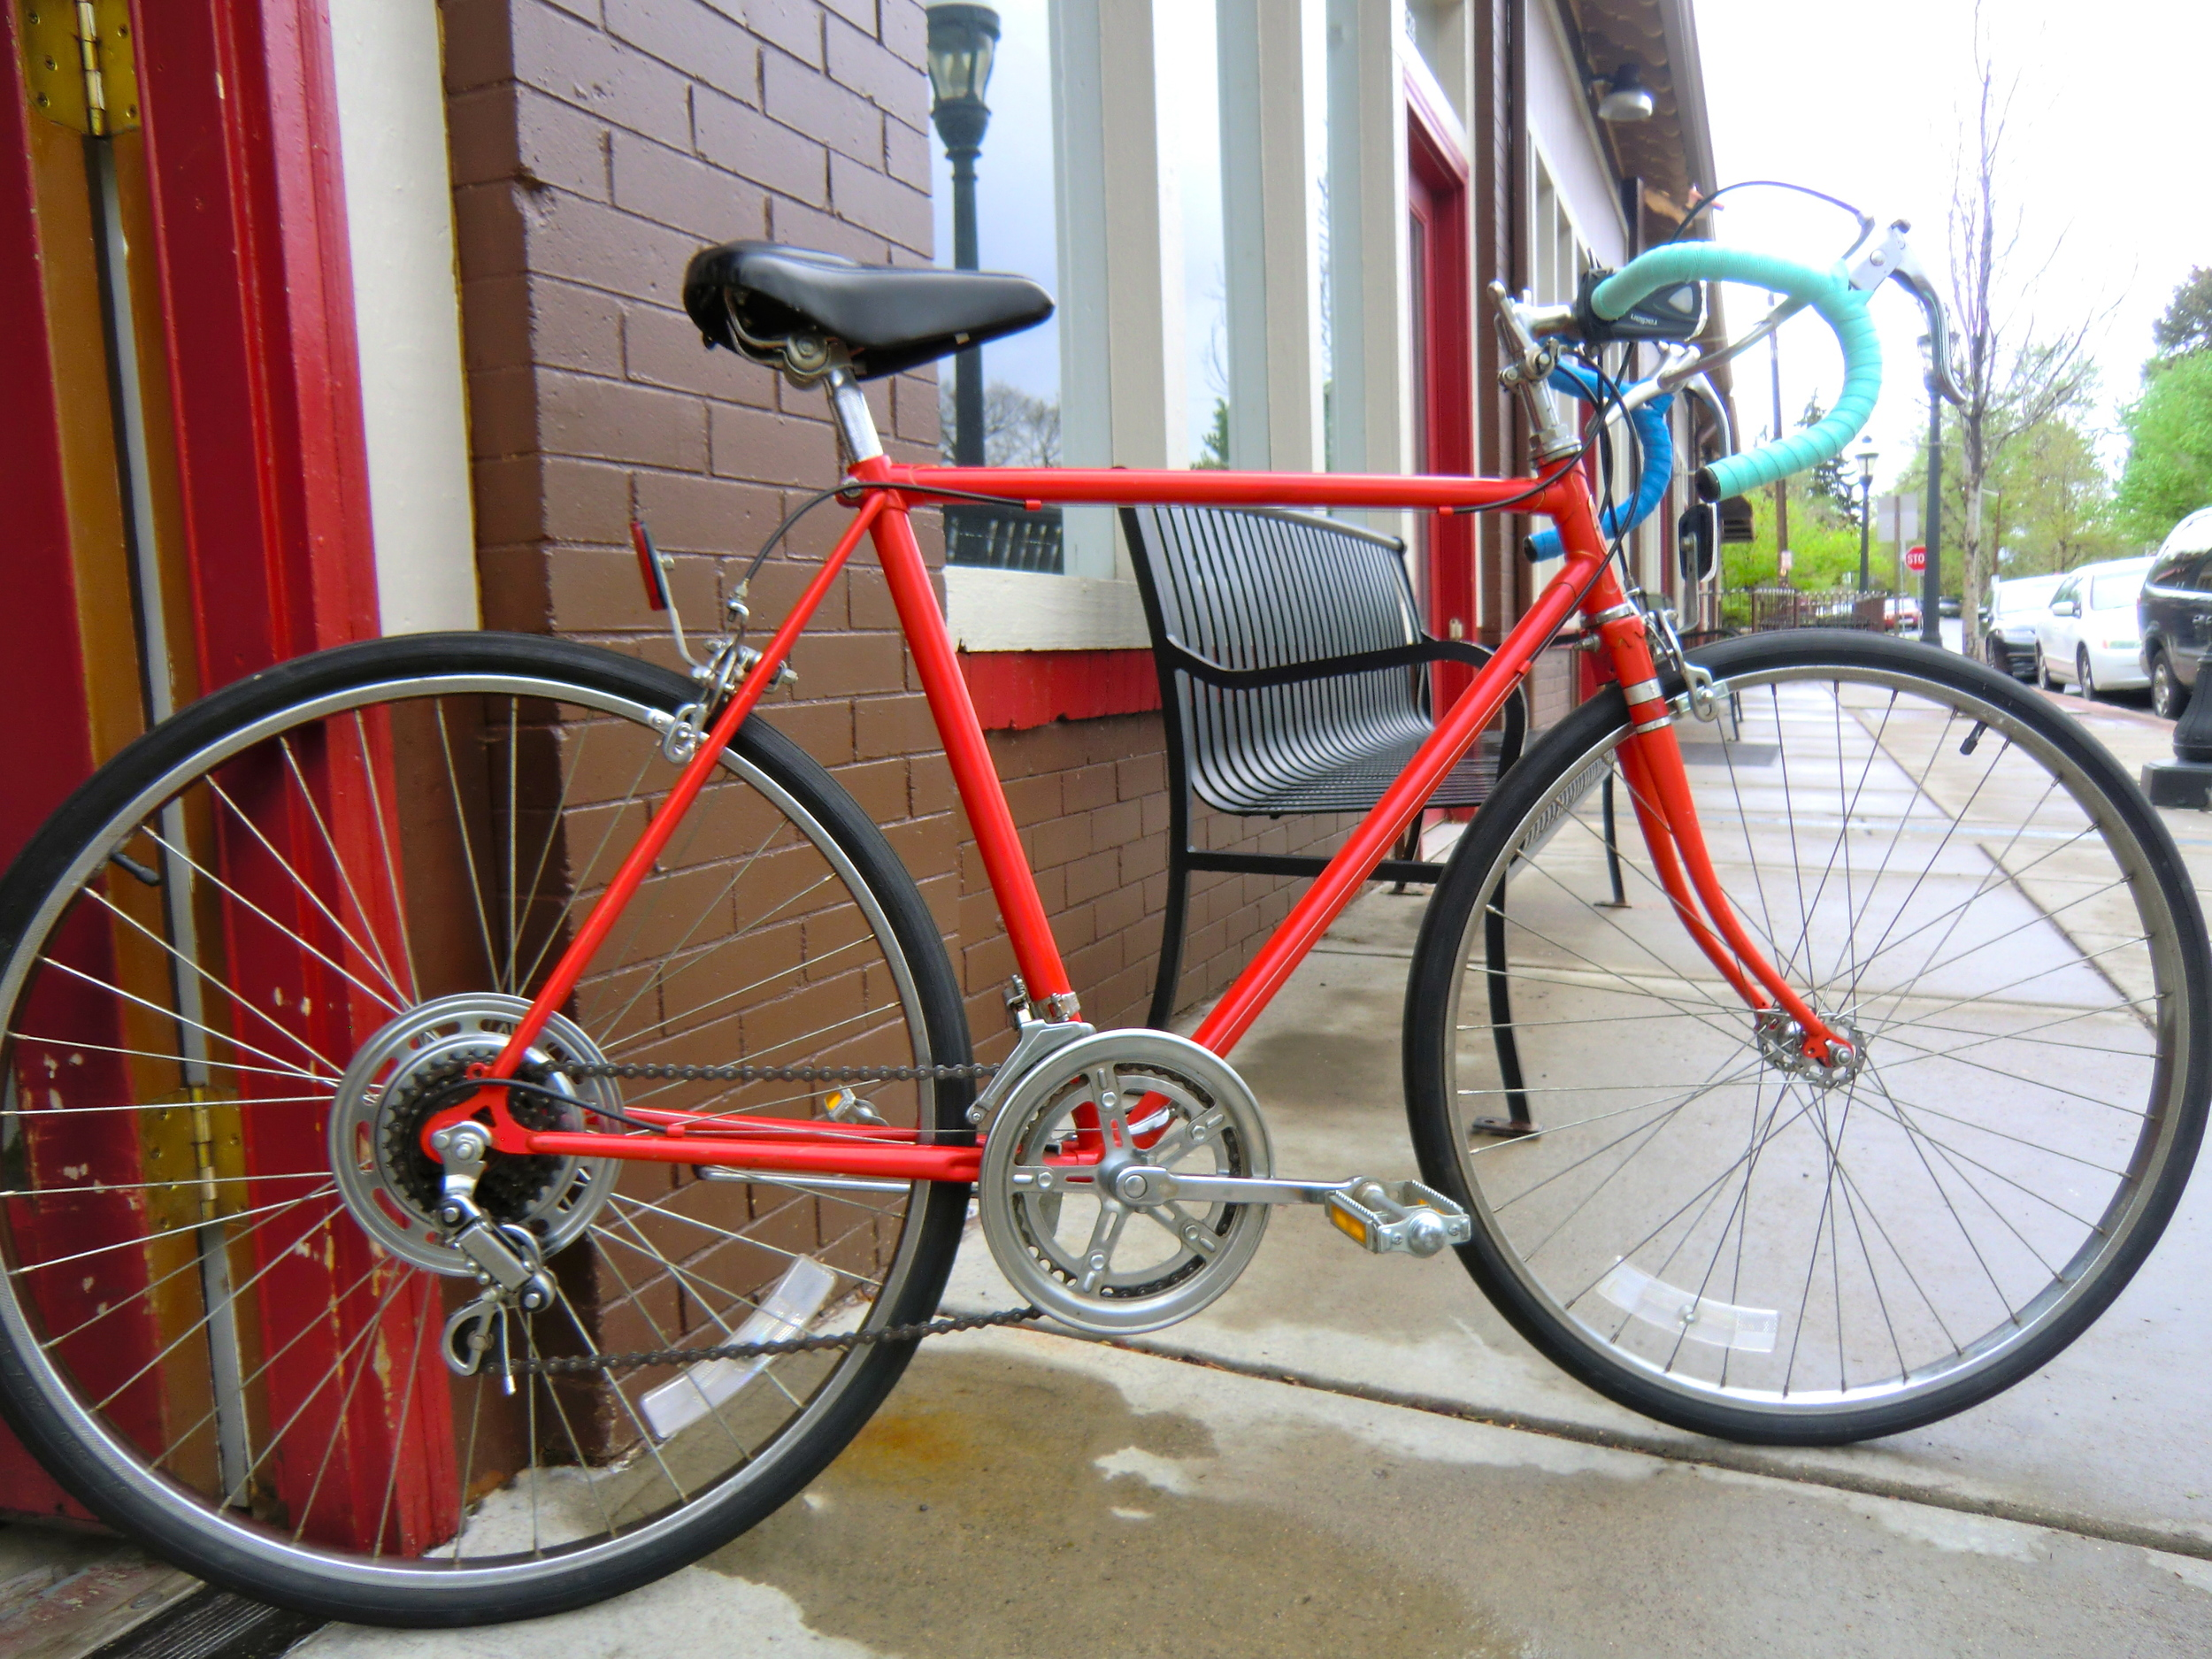 classic steel frame 10-speed ready for another year of city commuting.